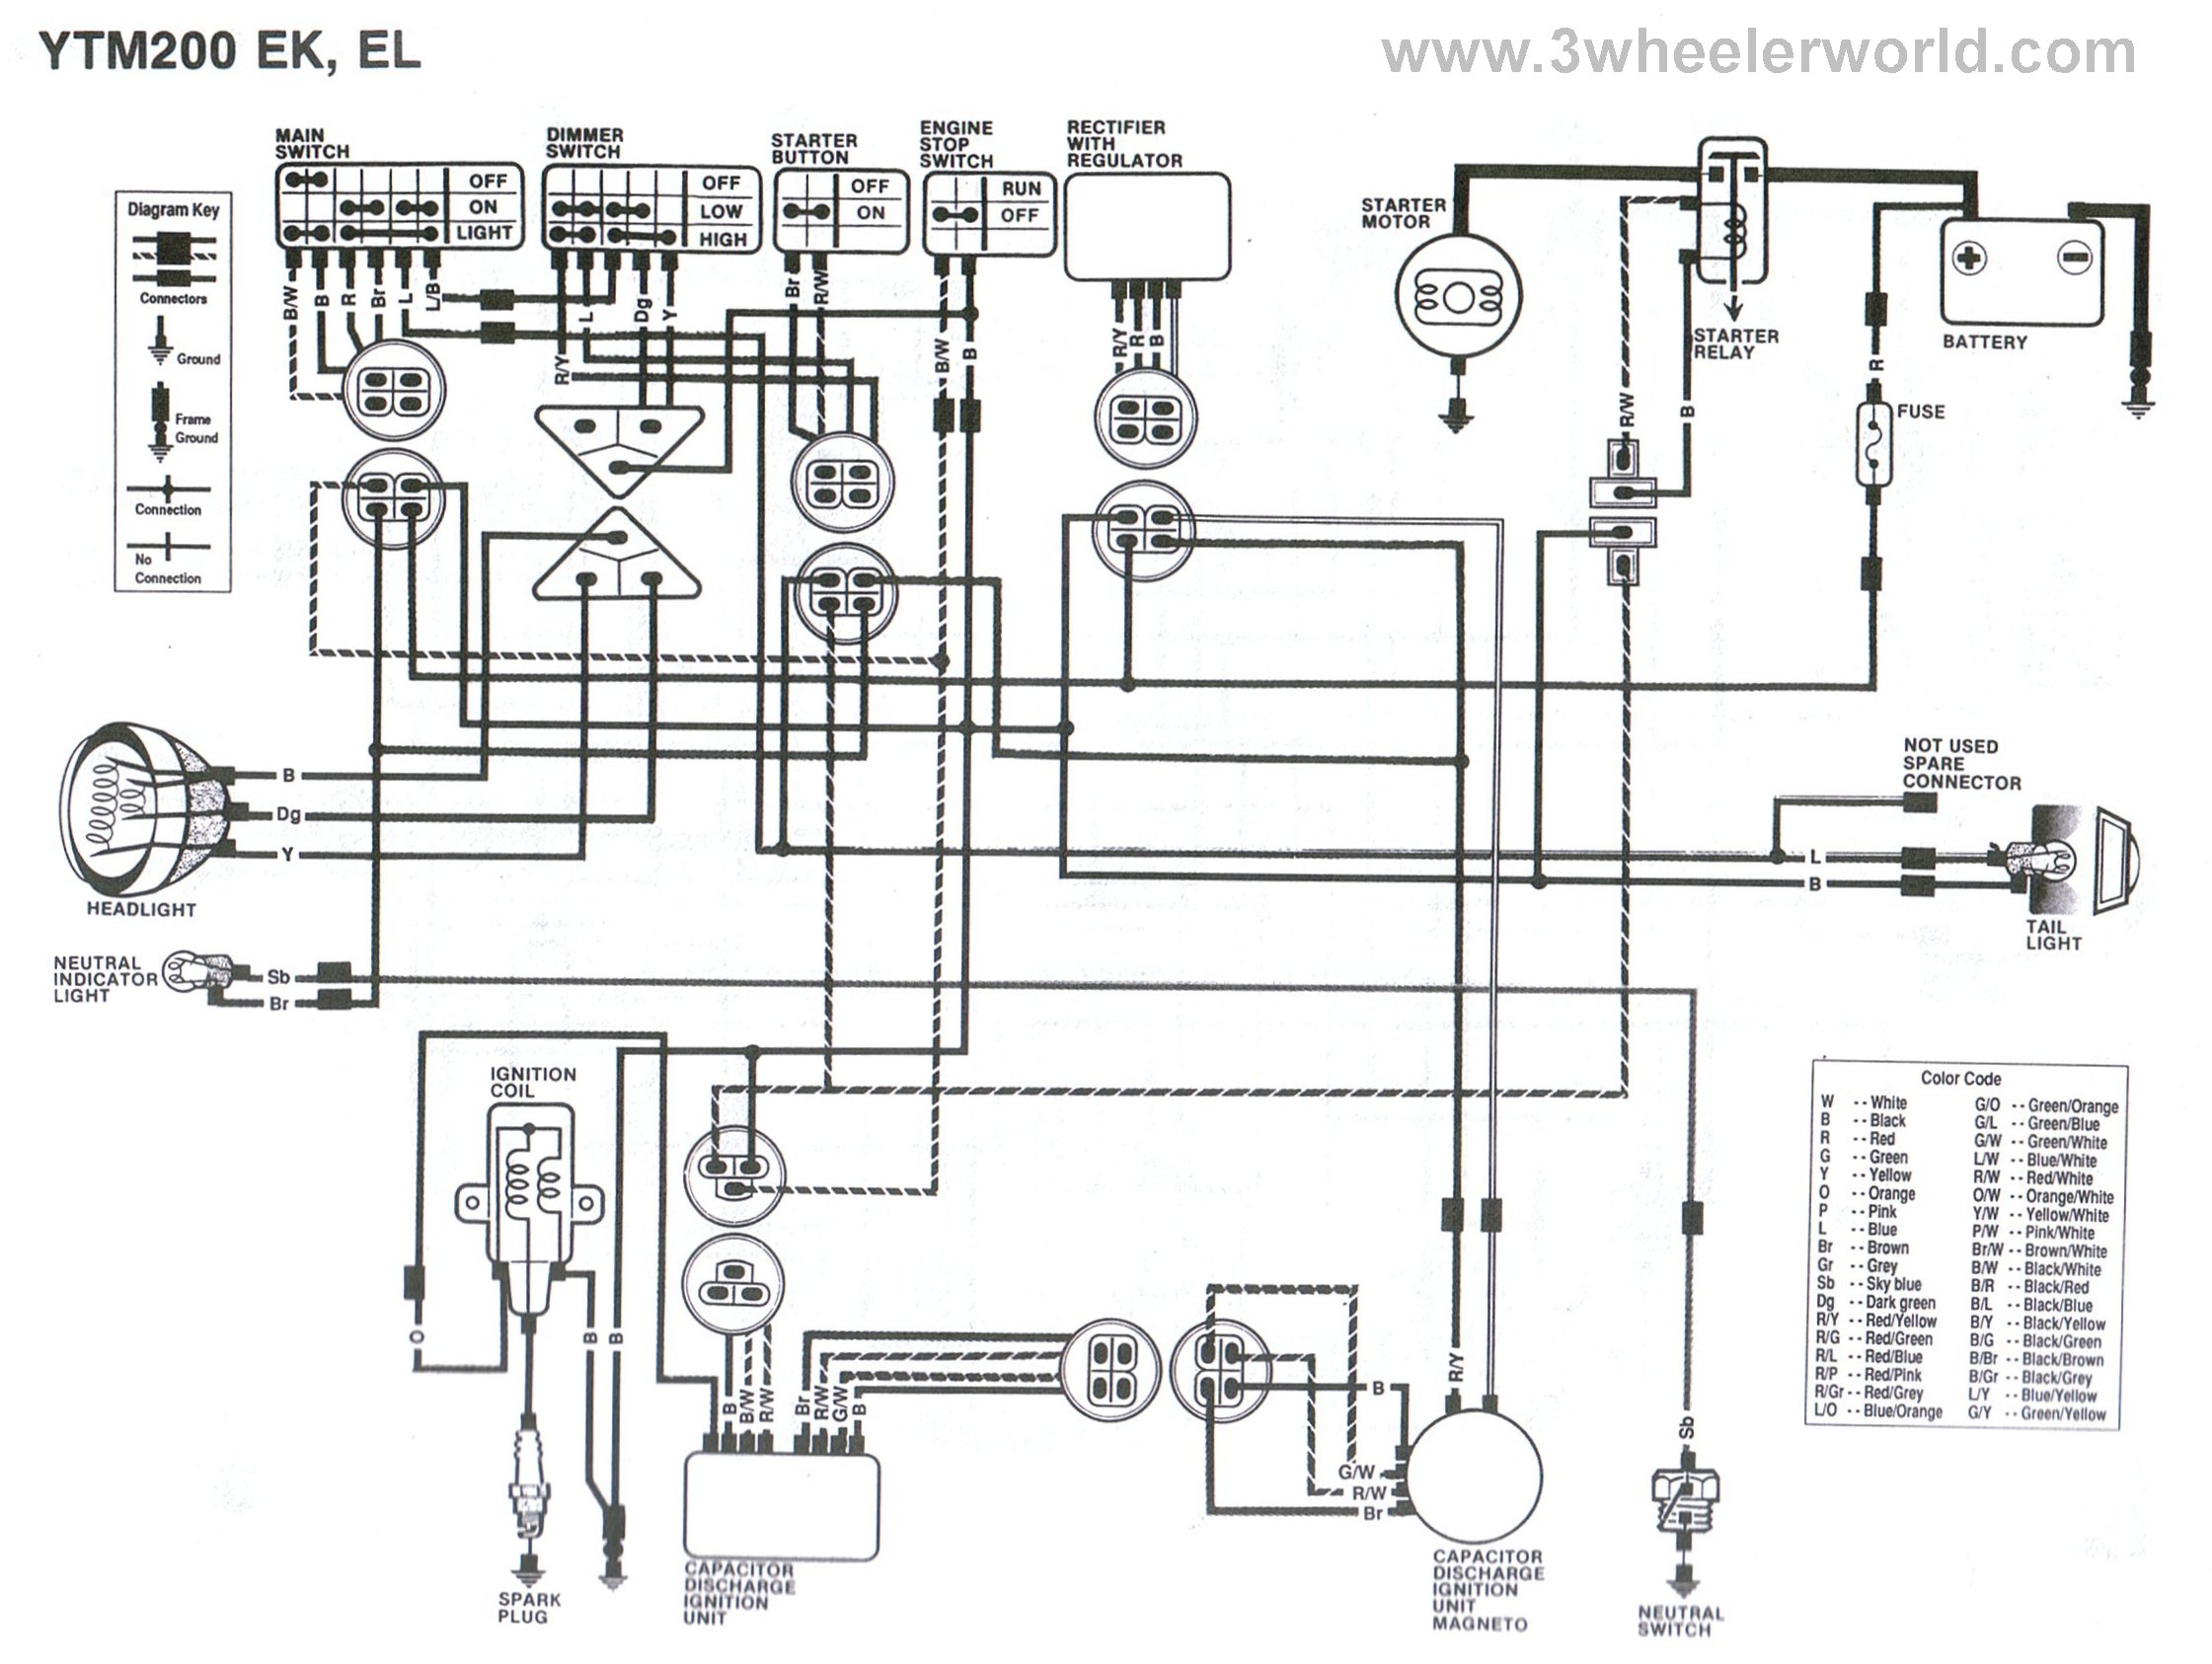 YTM200EKEL 3 wheeler world tech help yamaha wiring diagrams yamaha ttr 225 wiring diagram at webbmarketing.co